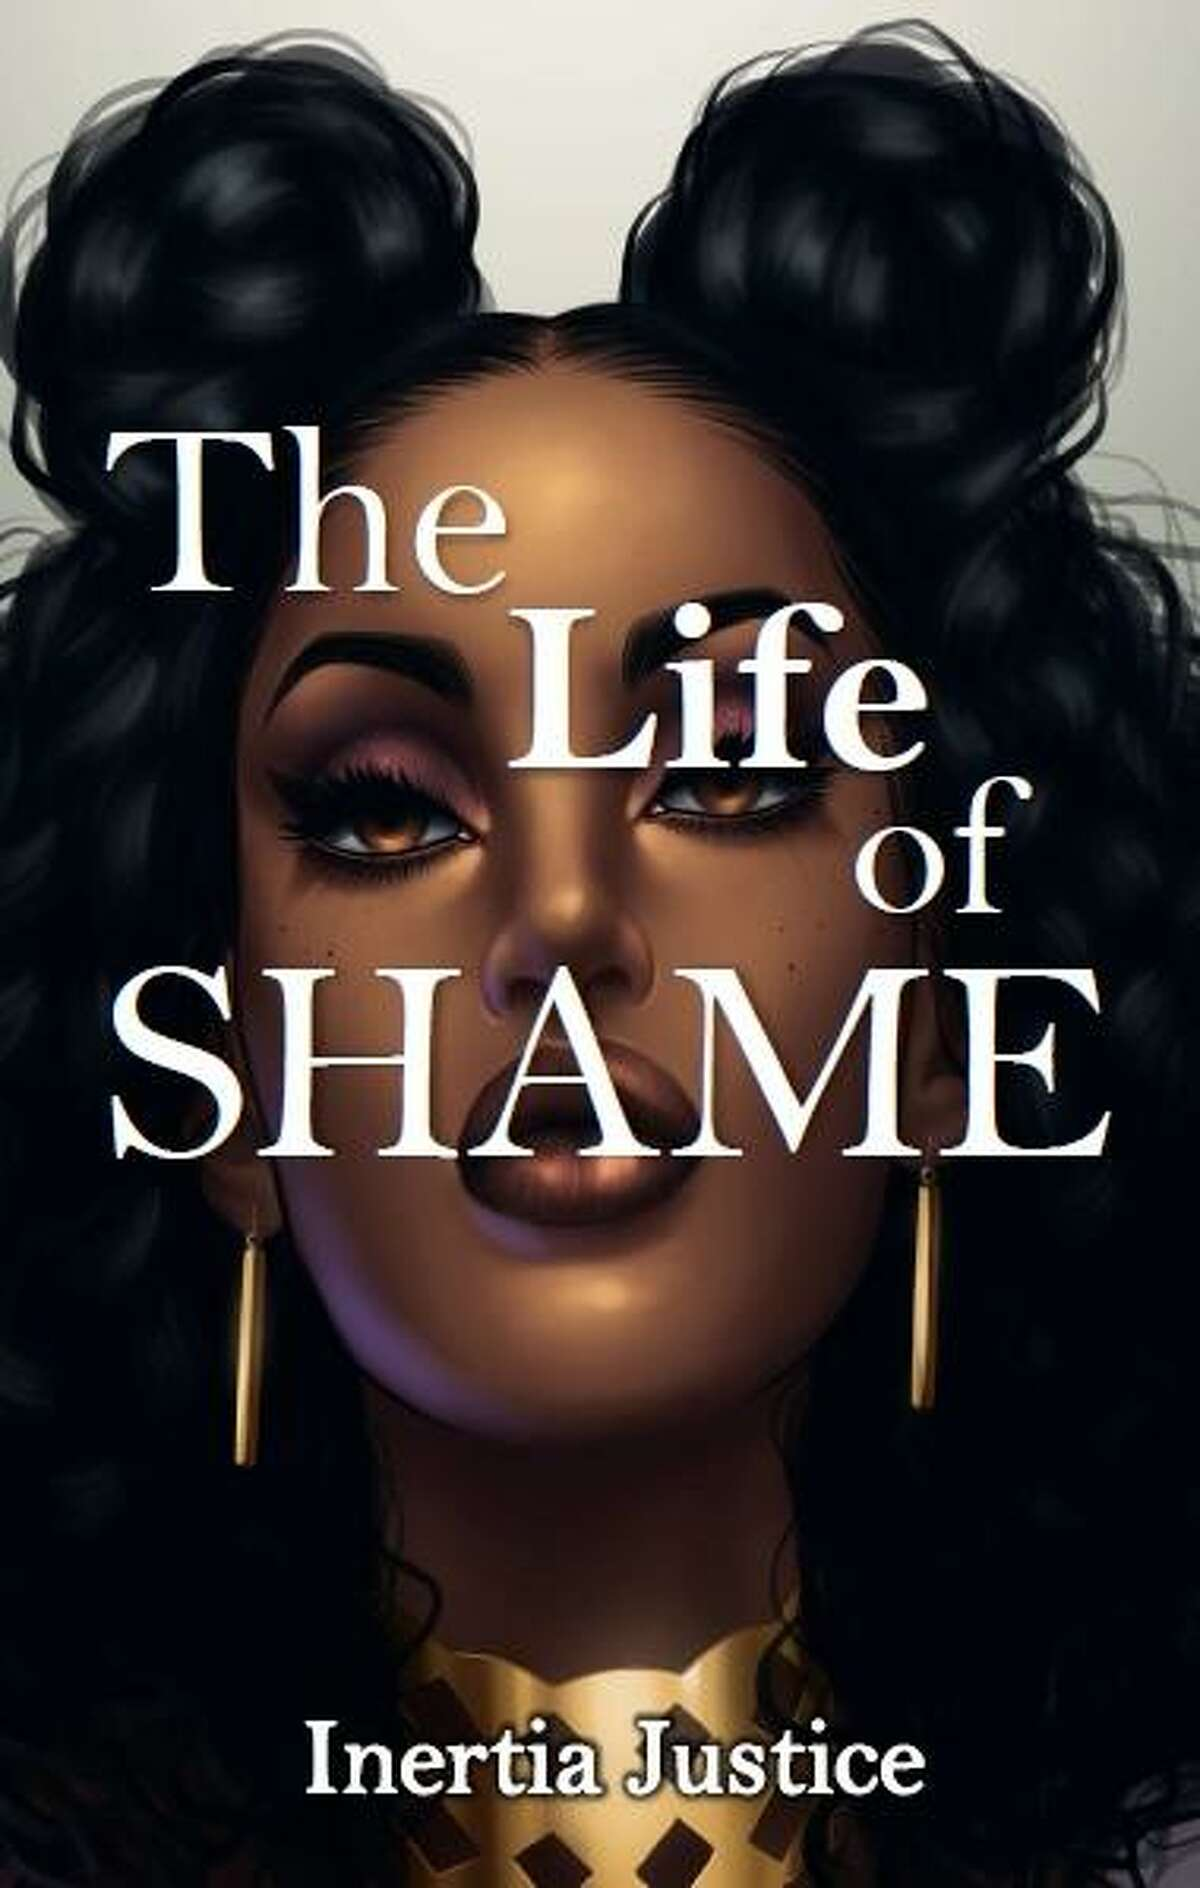 Inertia Justice, a native Houstonian and international slam poet, has published her first novel The Life of Shame.